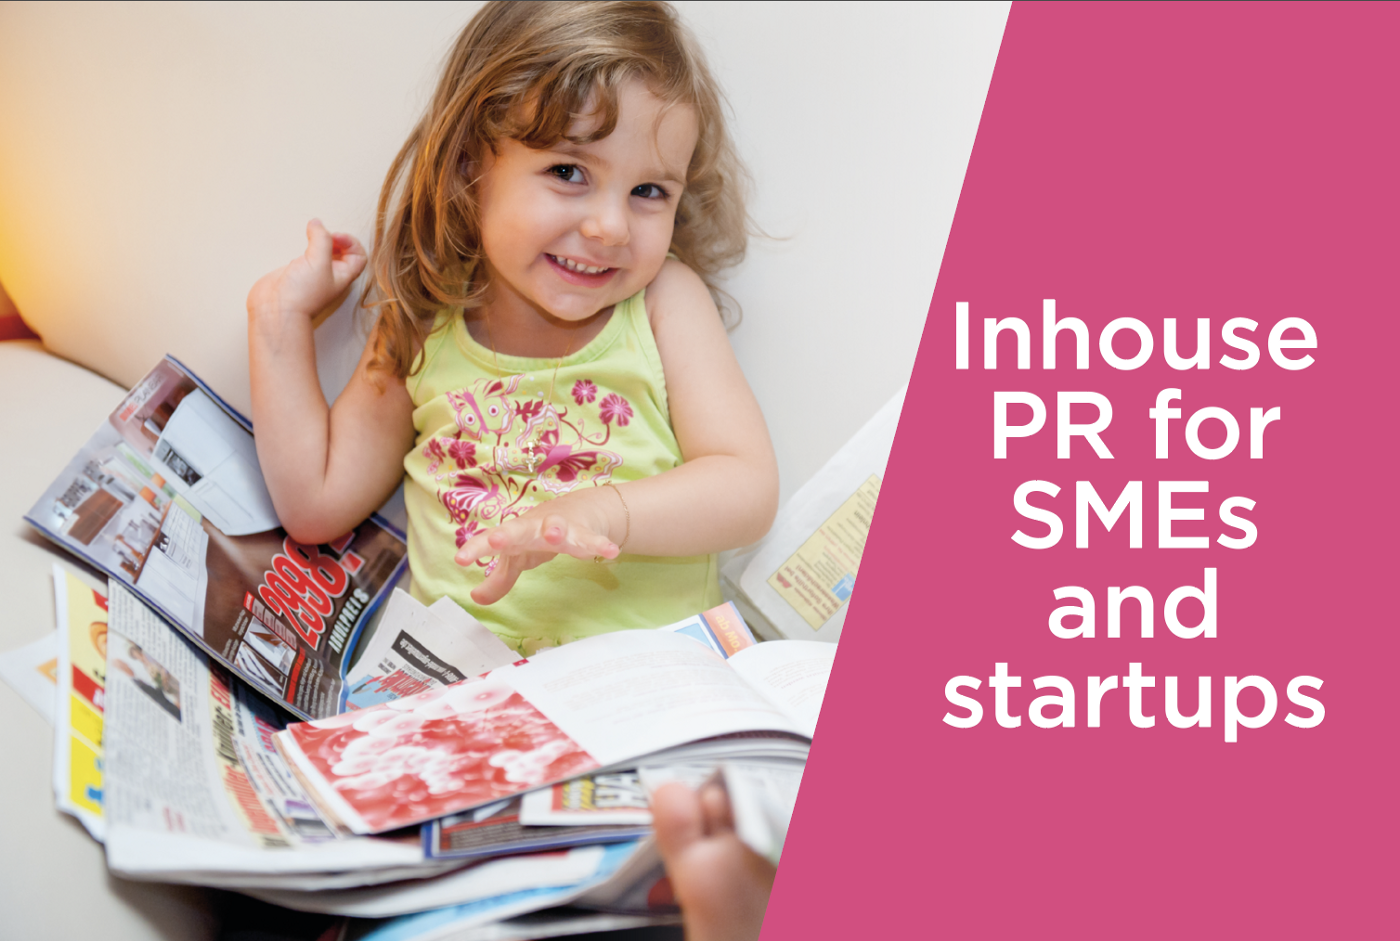 Public Relations for SMEs—4 tips for doing PR inhouse